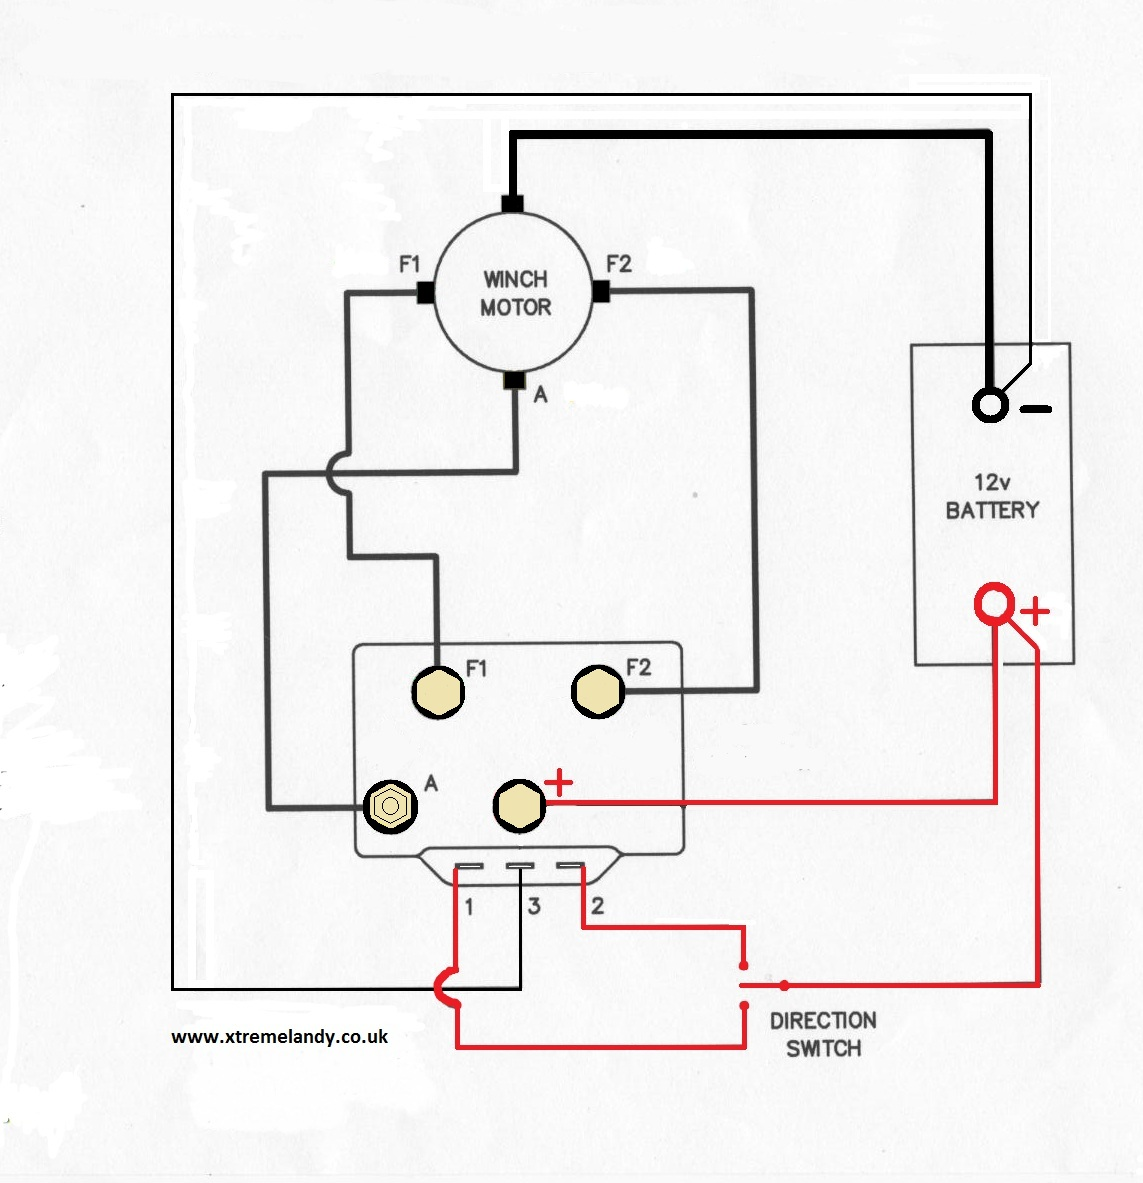 1986 champion boat wiring diagram - wiring for jeep mb for wiring diagram  schematics  wiring diagram schematics